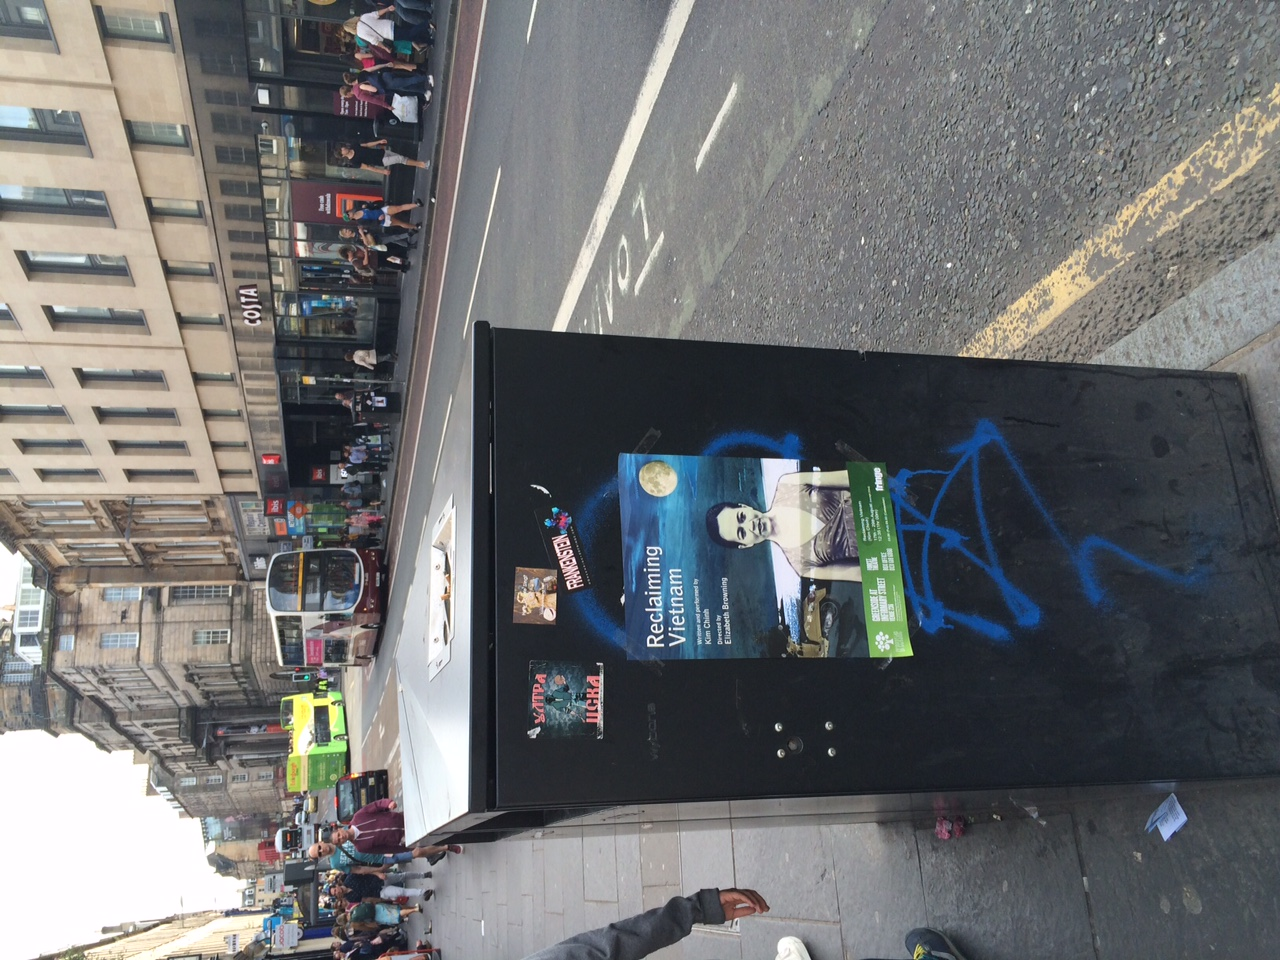 Check out my poster amidst the hustle and bustle of Edinburgh during Festival time. Ah yes.